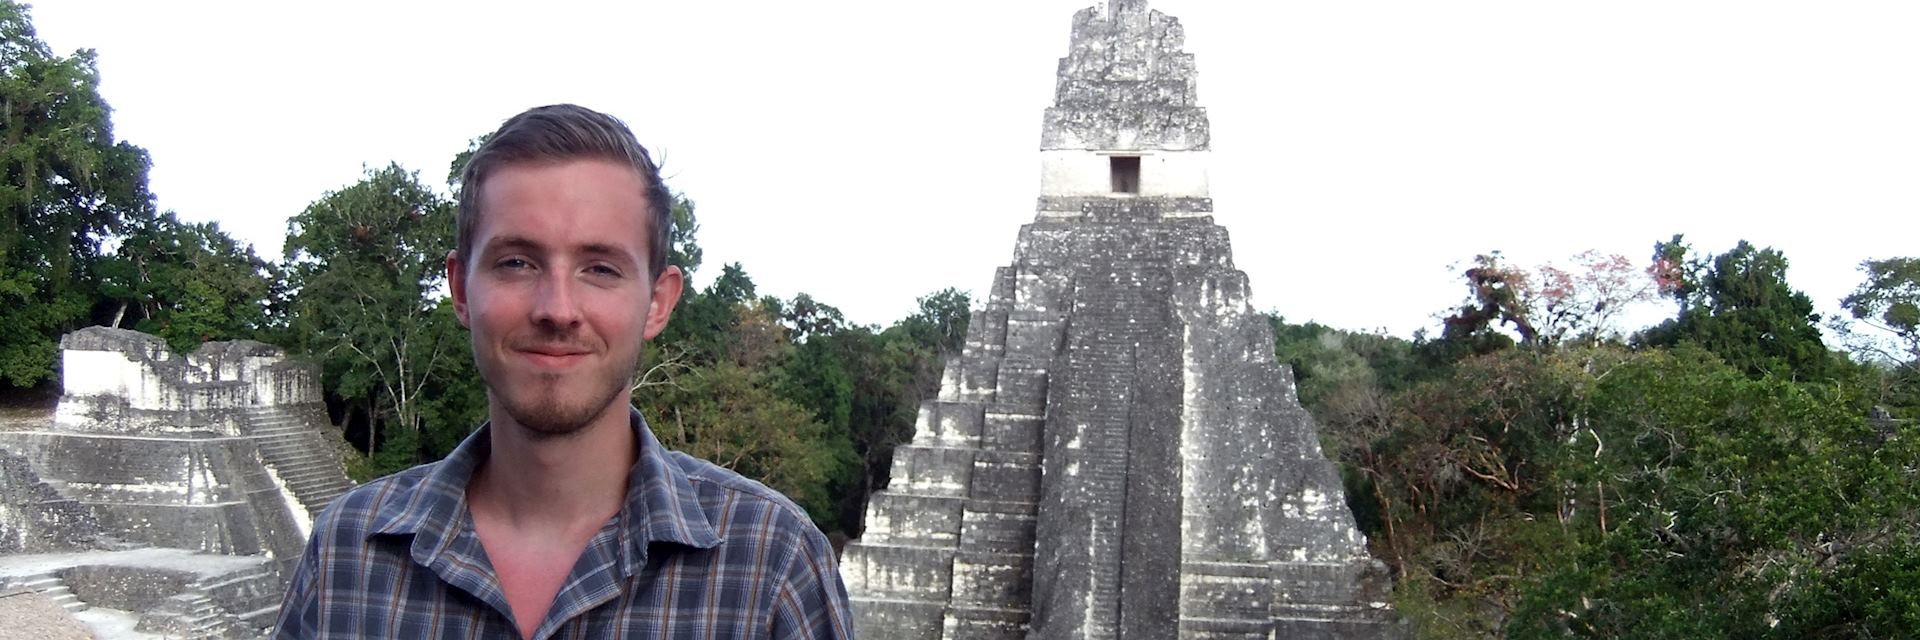 Tom visiting the temples at Tikal, Guatemala